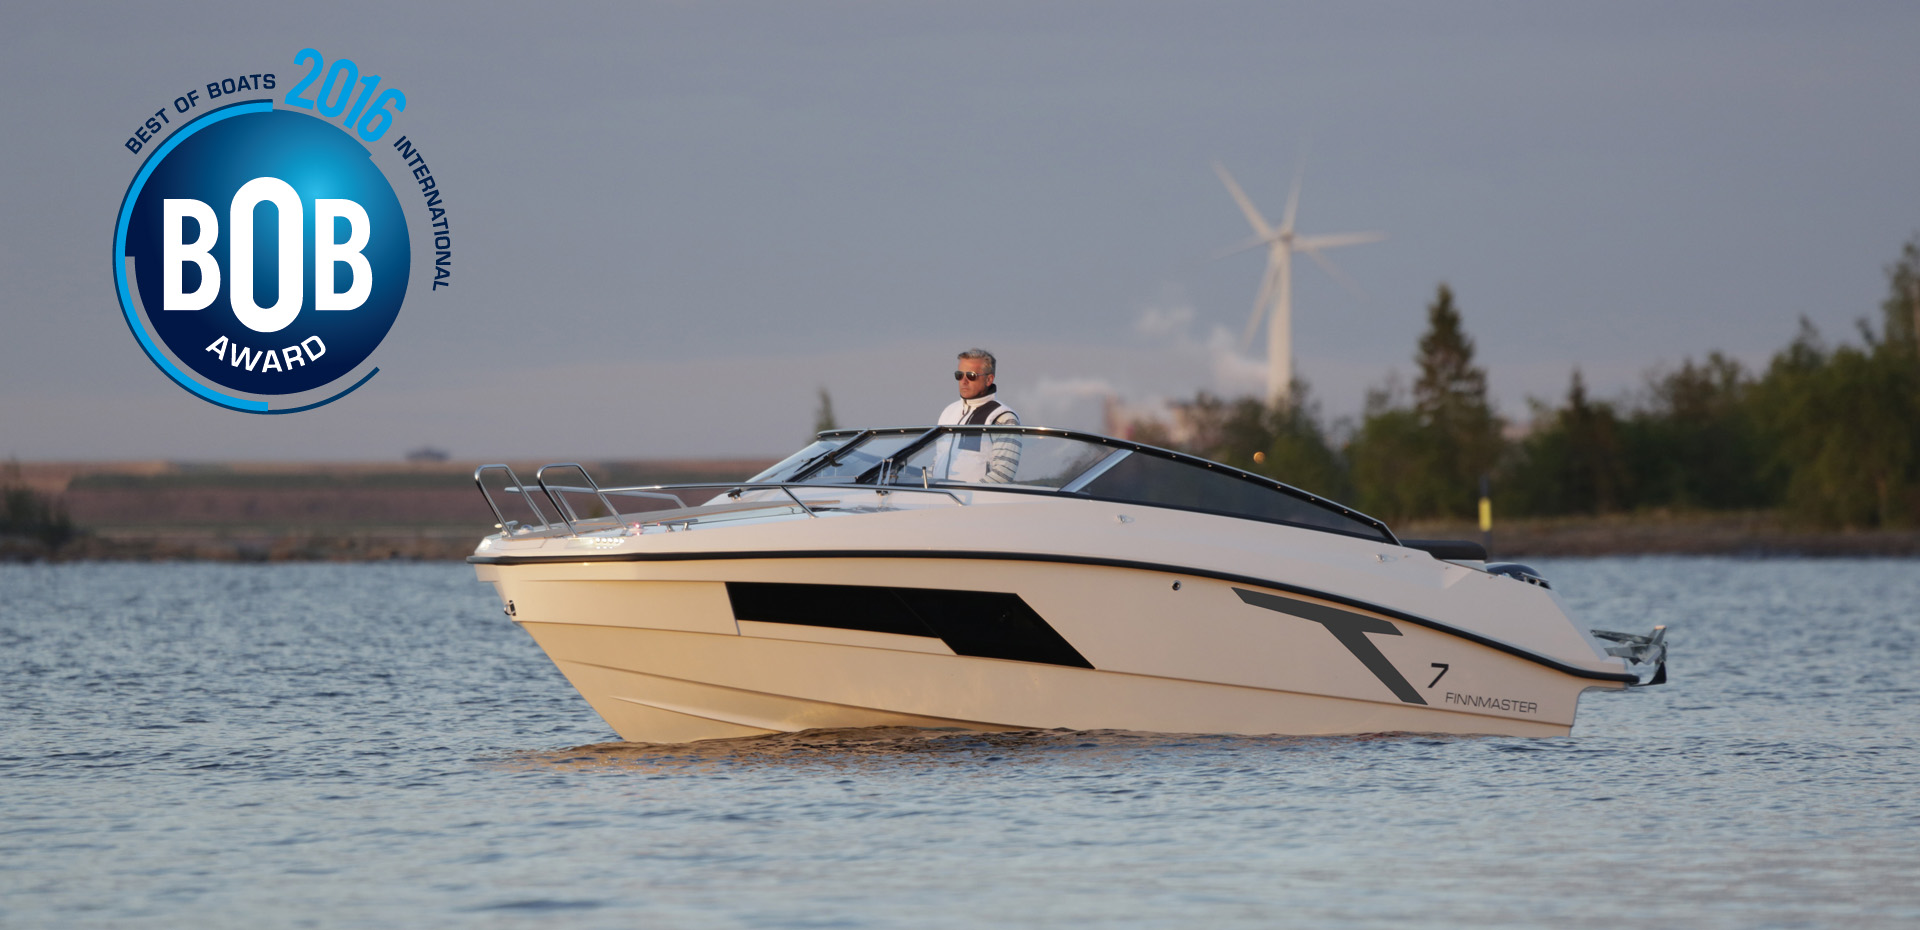 The Best of Boats Award 2016!